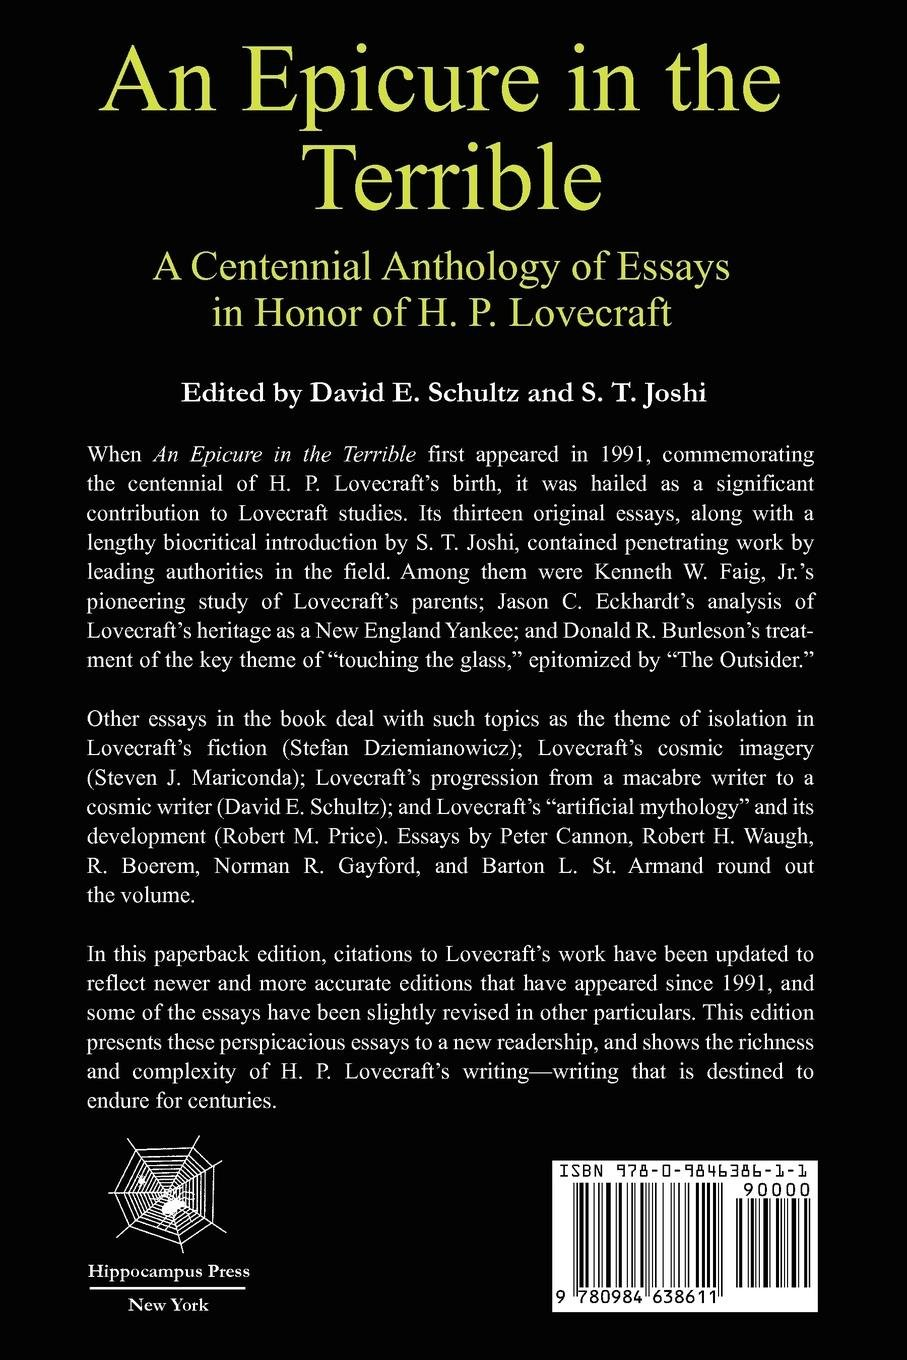 com an epicure in the terrible a centennial anthology of com an epicure in the terrible a centennial anthology of essays in honor of h p lovecraft 9780984638611 david e schultz s t joshi books